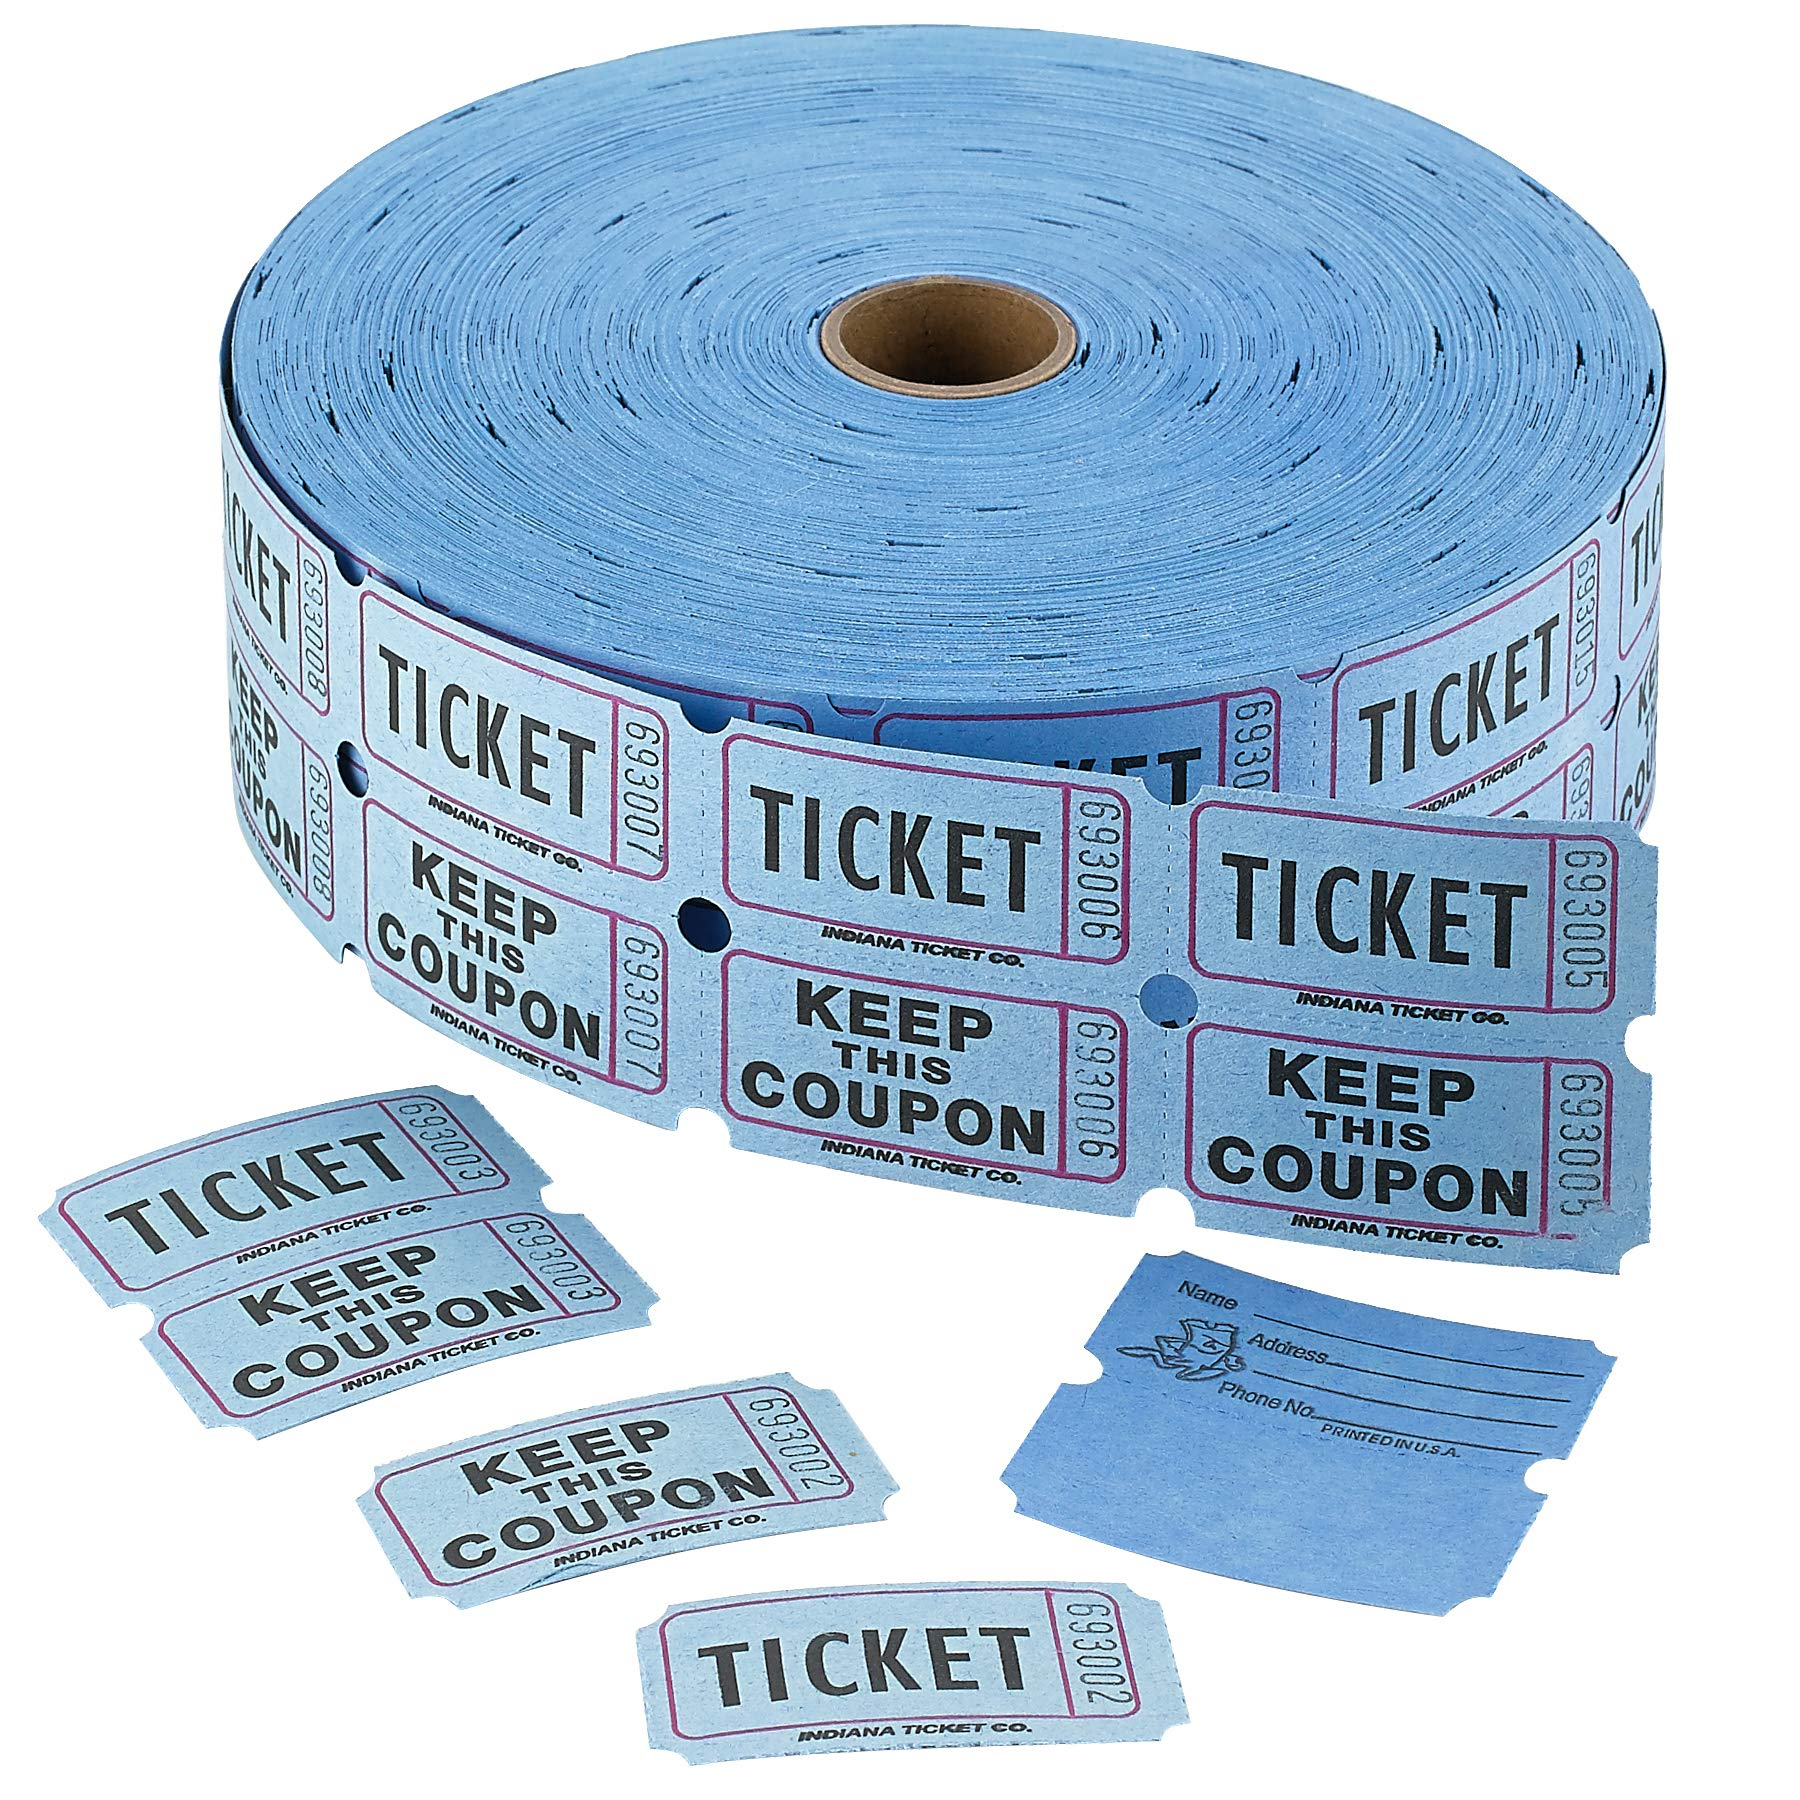 Admit 1 Double Ticket Rolls - Blue - 2000 Per Roll - Carnival Tickets - Concert Tickets - Admission Tickets by Kicko